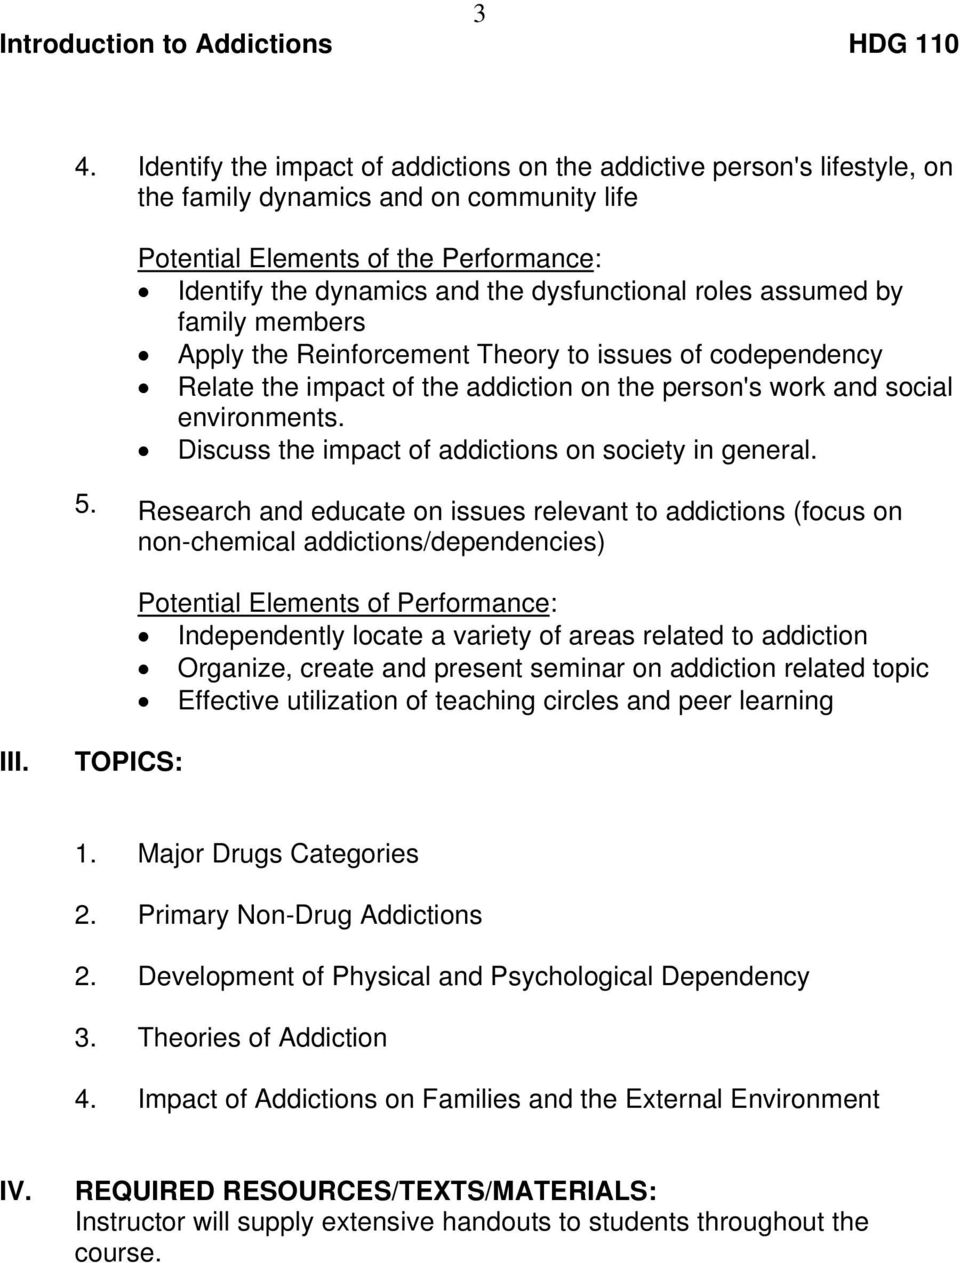 Research and educate on issues relevant to addictions (focus on non-chemical addictions/dependencies) Potential Elements of Performance: Independently locate a variety of areas related to addiction